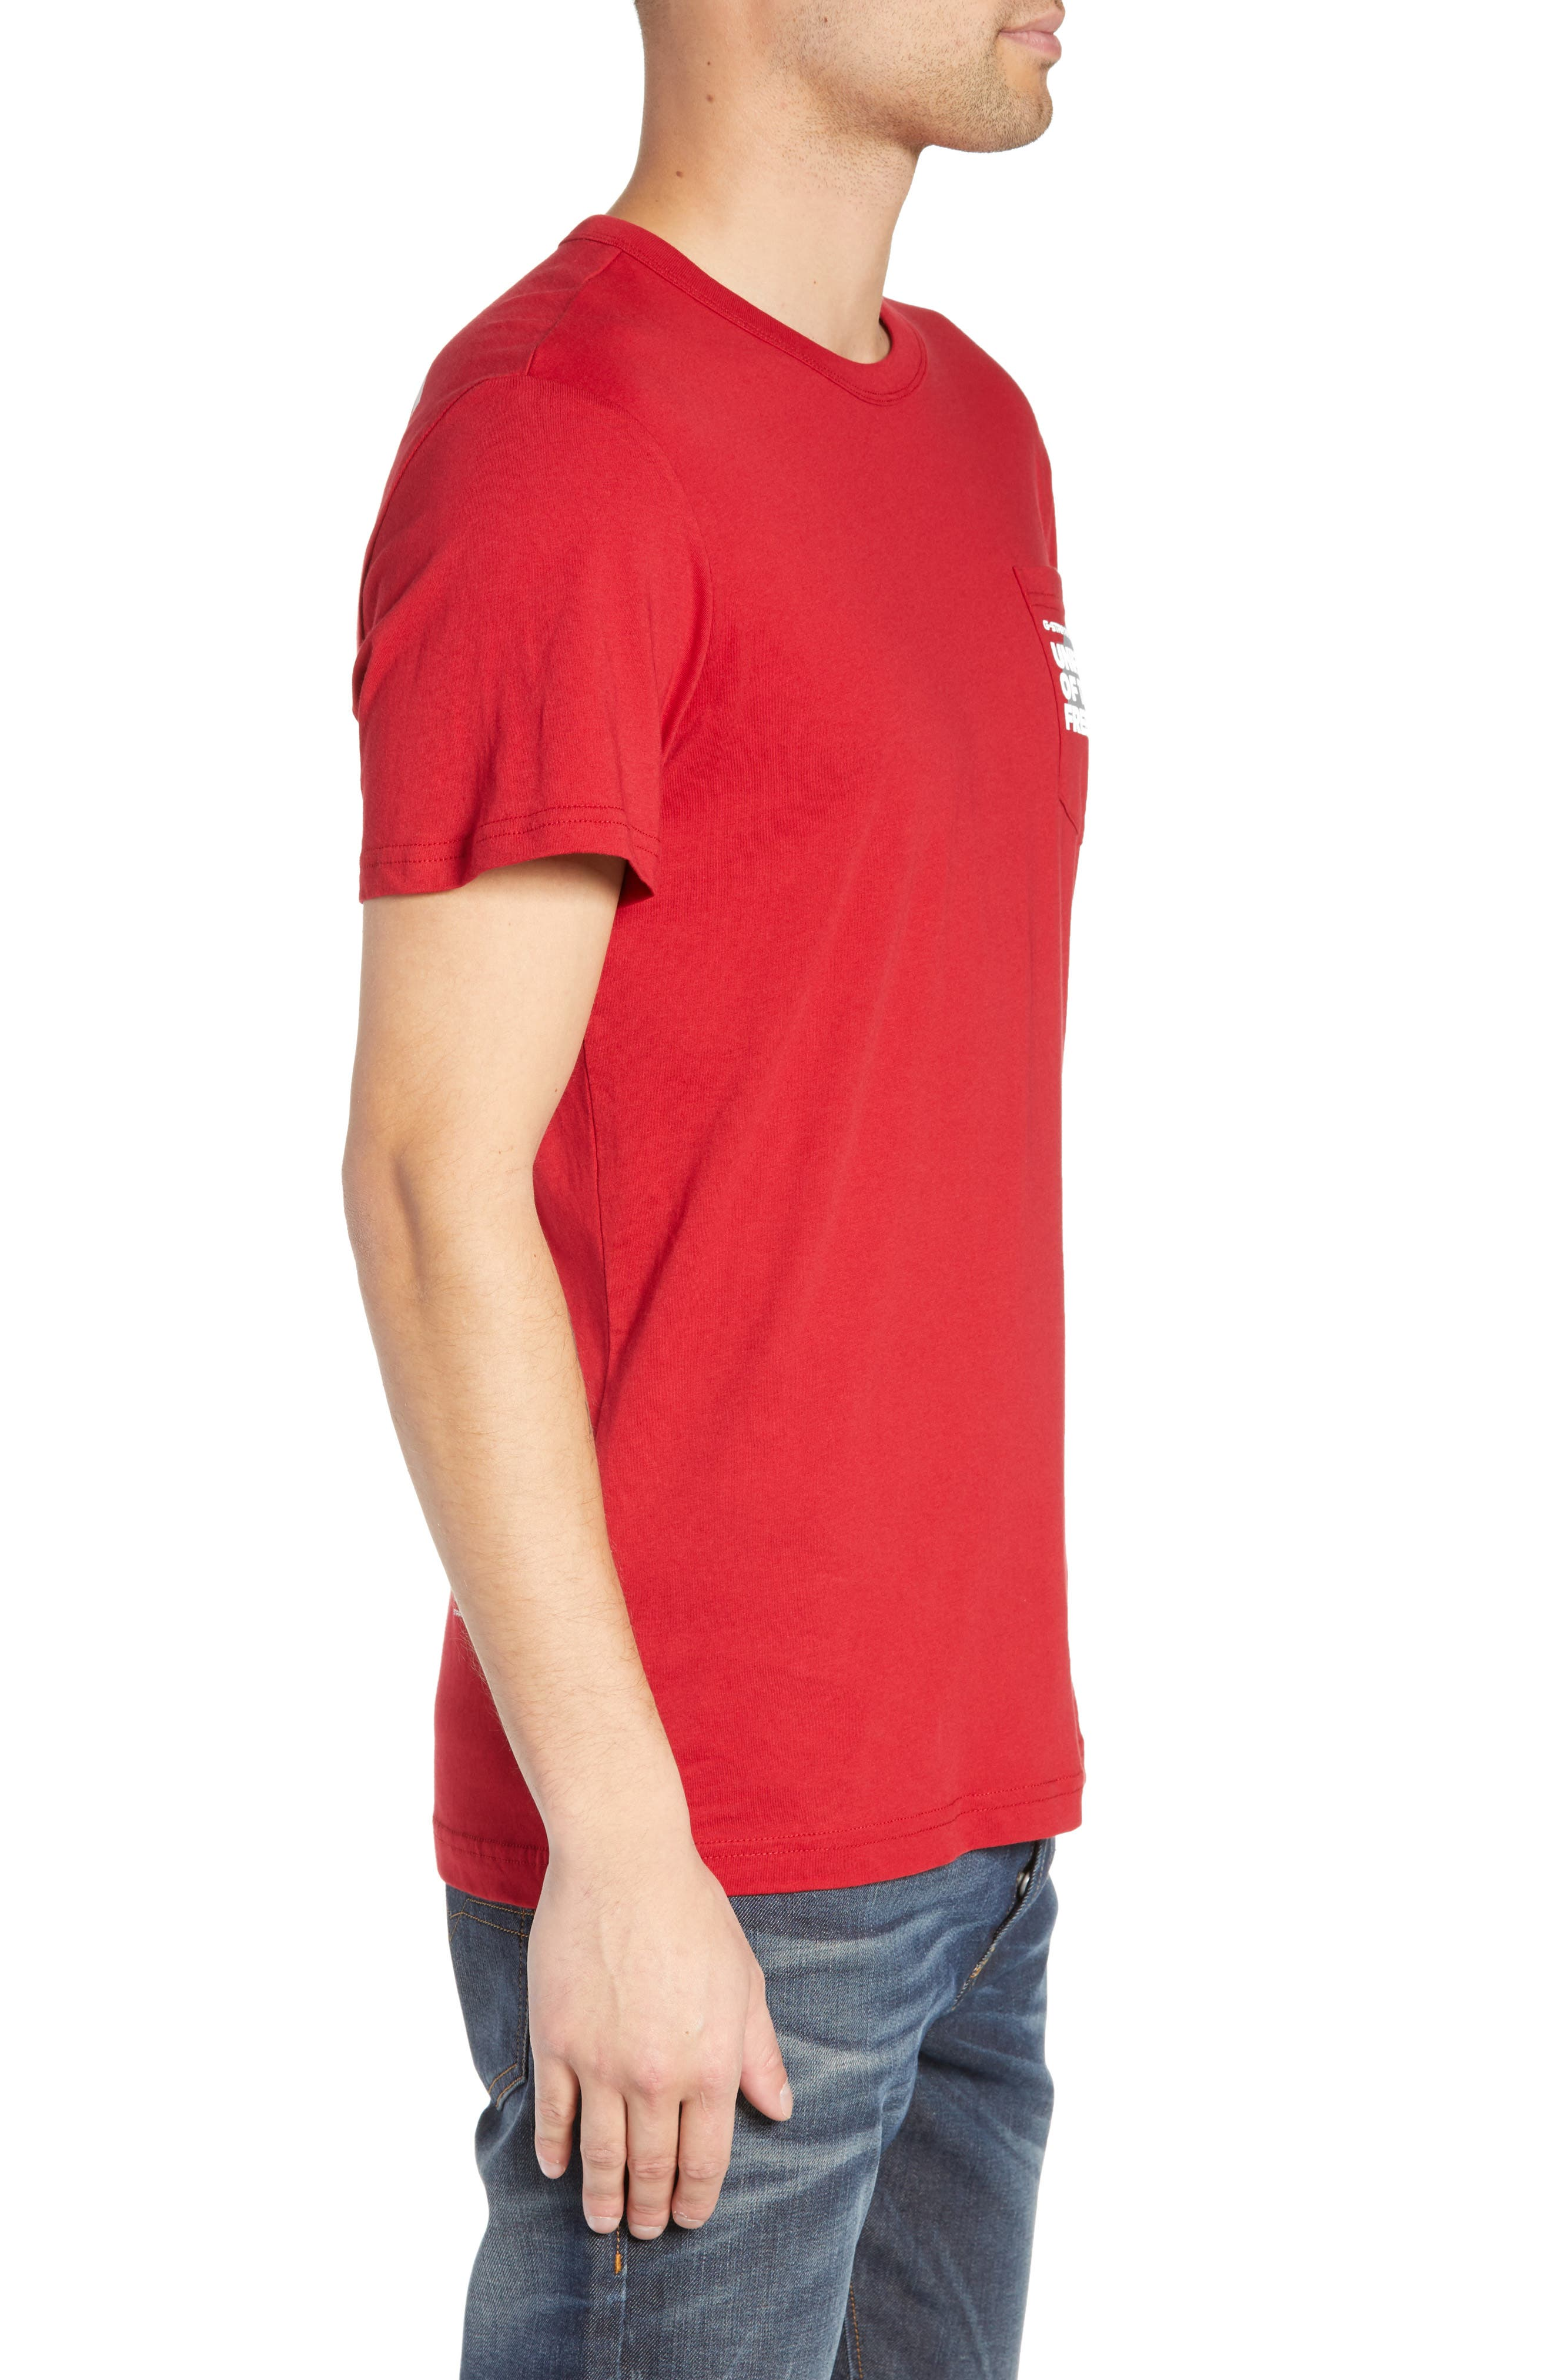 UOTF Pocket T-Shirt,                             Alternate thumbnail 3, color,                             CHILI RED